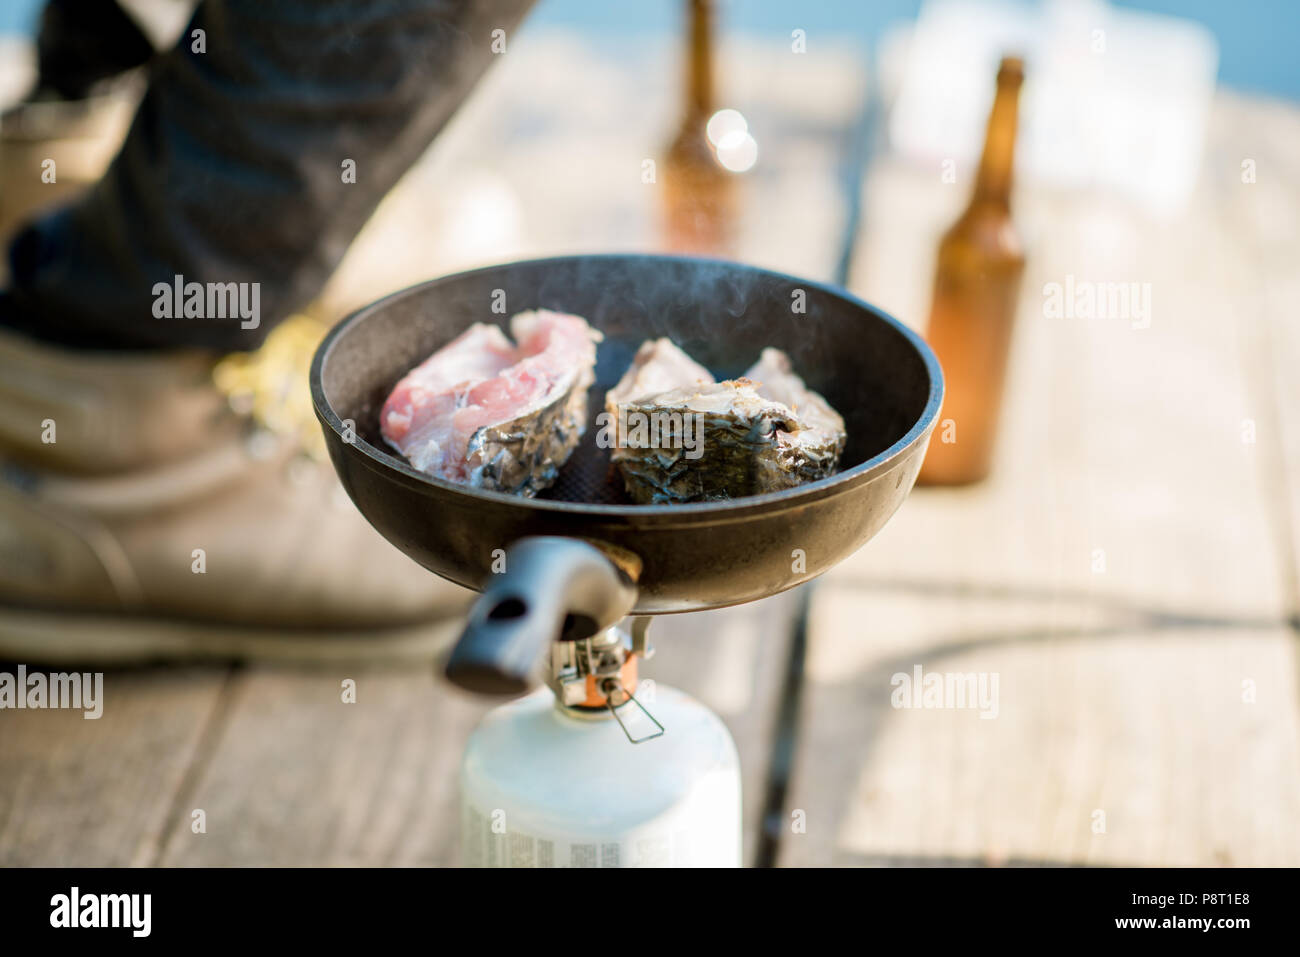 Frying two fish steakes on the burner during the picnic with beer and fishing tackles outdoors - Stock Image